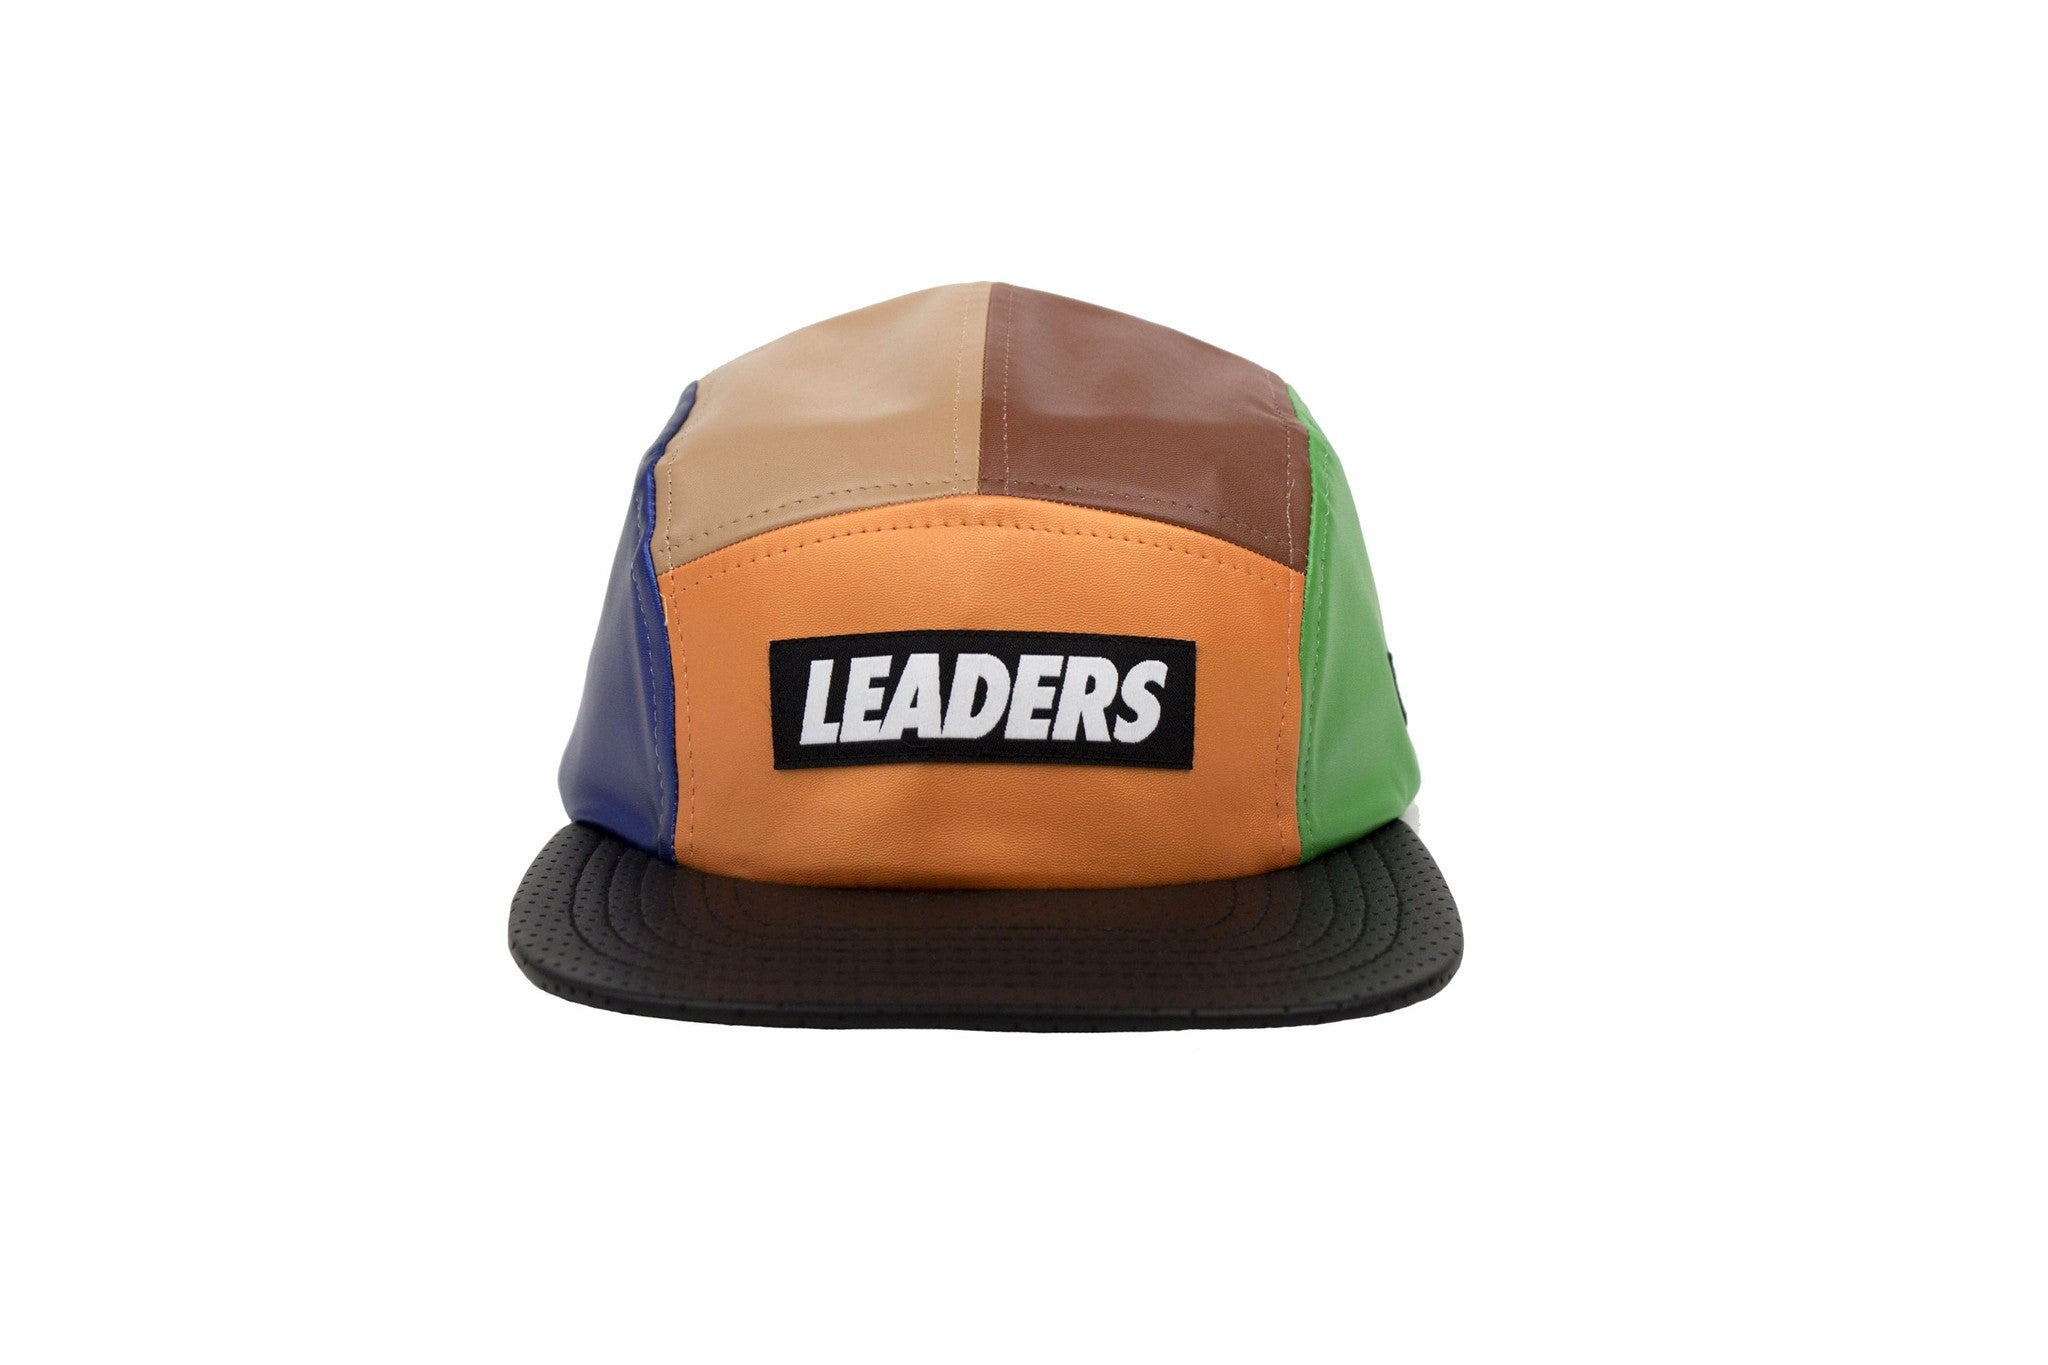 Leaders Leather 5 Panel Green/Brown Hat